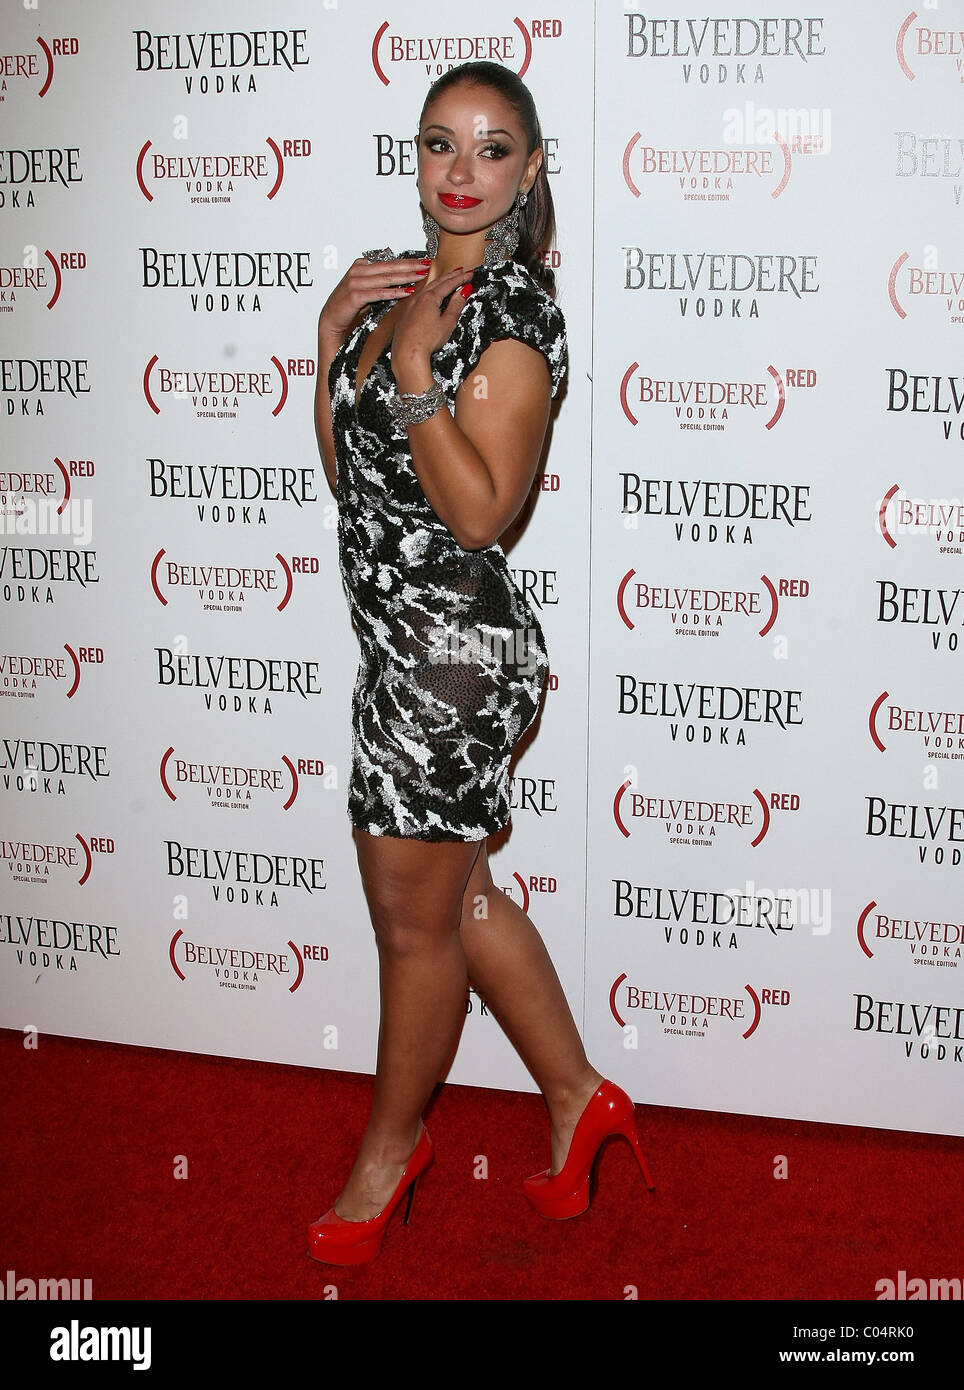 MYA BELVEDERE RED LAUNCHES WITH USHER HOLLYWOOD LOS ANGELES CALIFORNIA USA 10 February 2011 - Stock Image